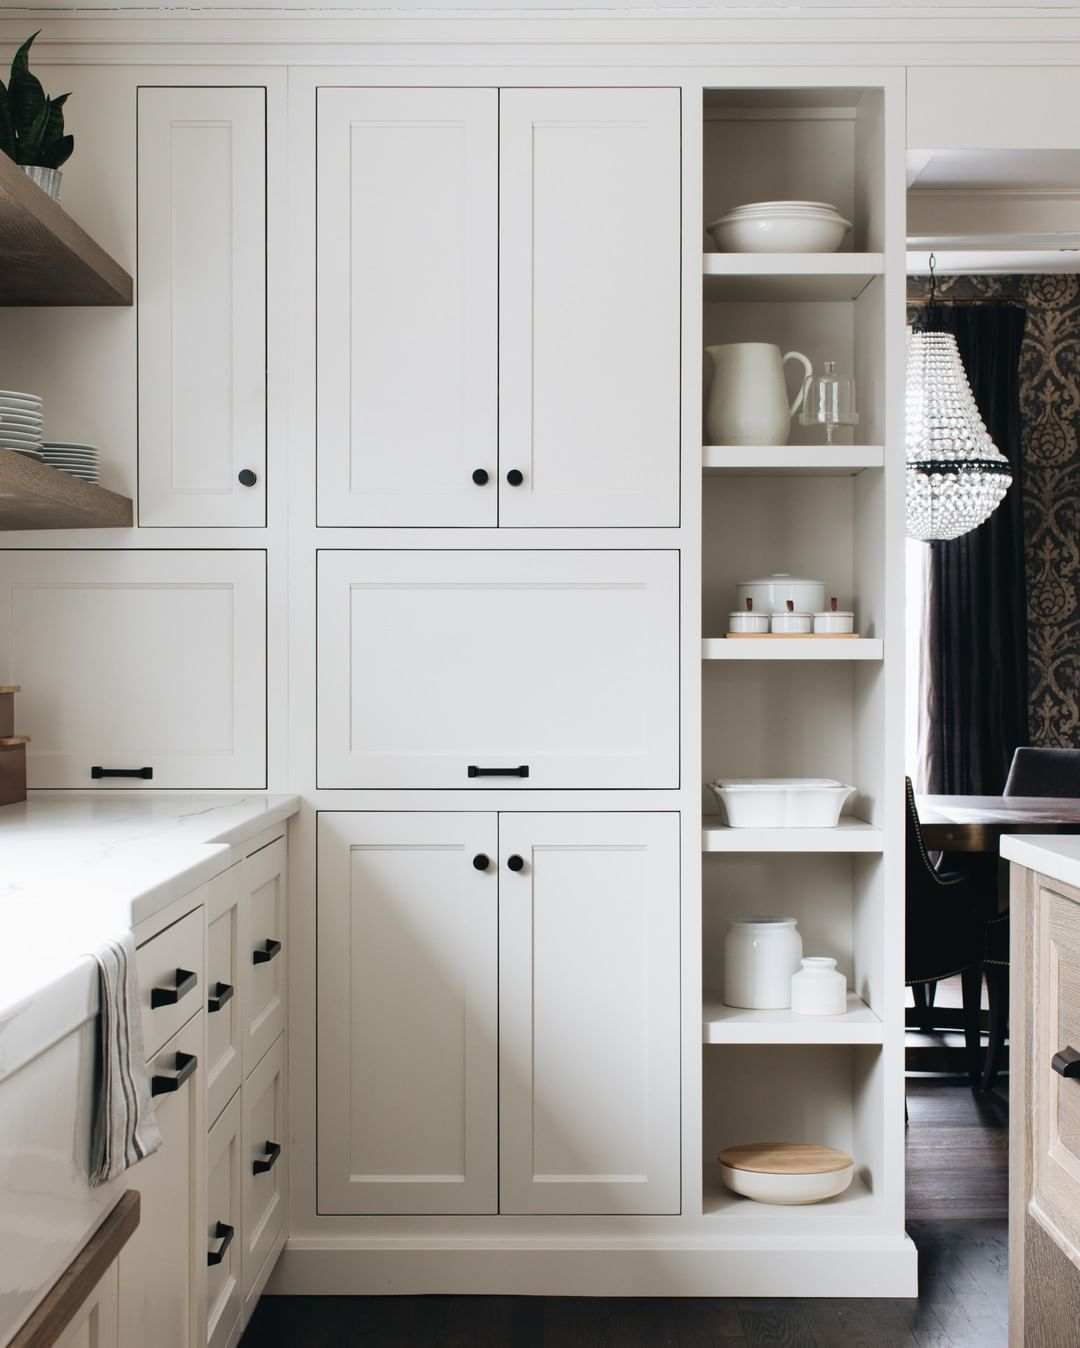 Kate Marker Interiors On Instagram Ample Kitchen Storage Means